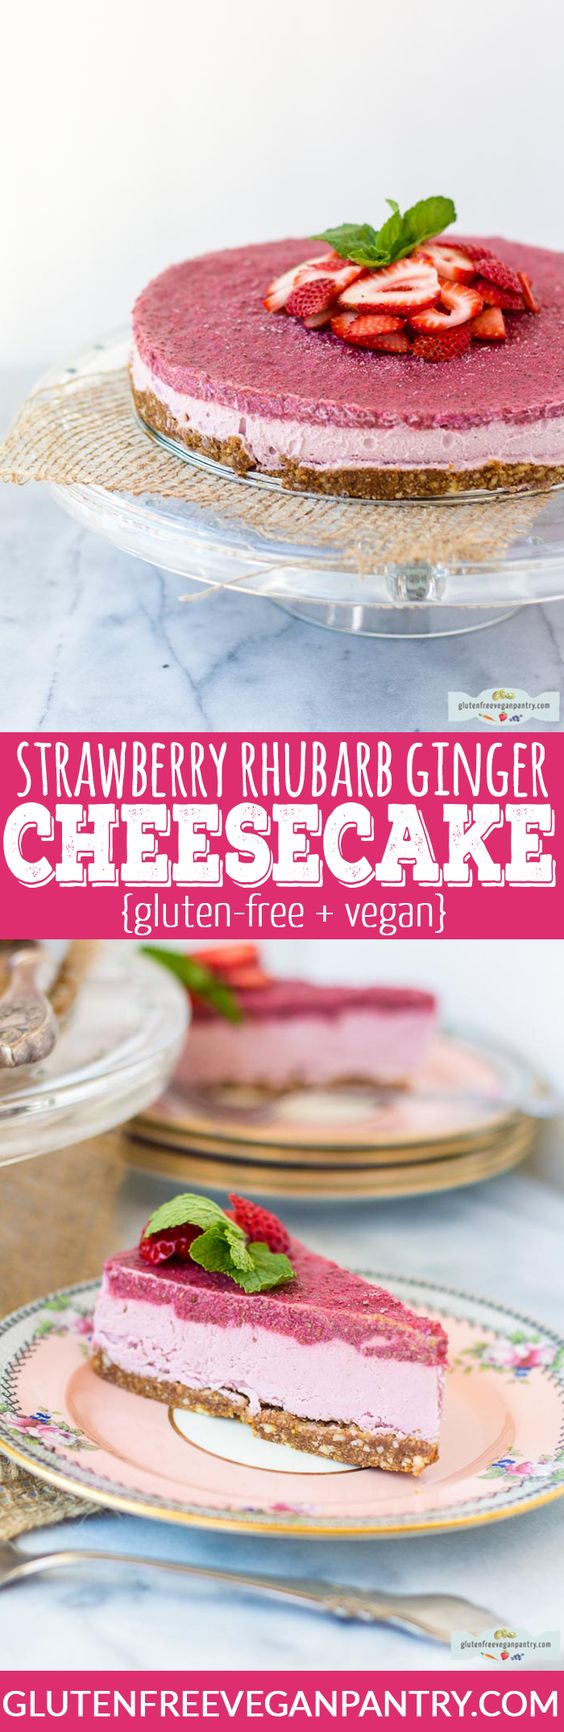 Strawberry Rhubarb Ginger Cheesecake - vegan + gluten-free. The ...